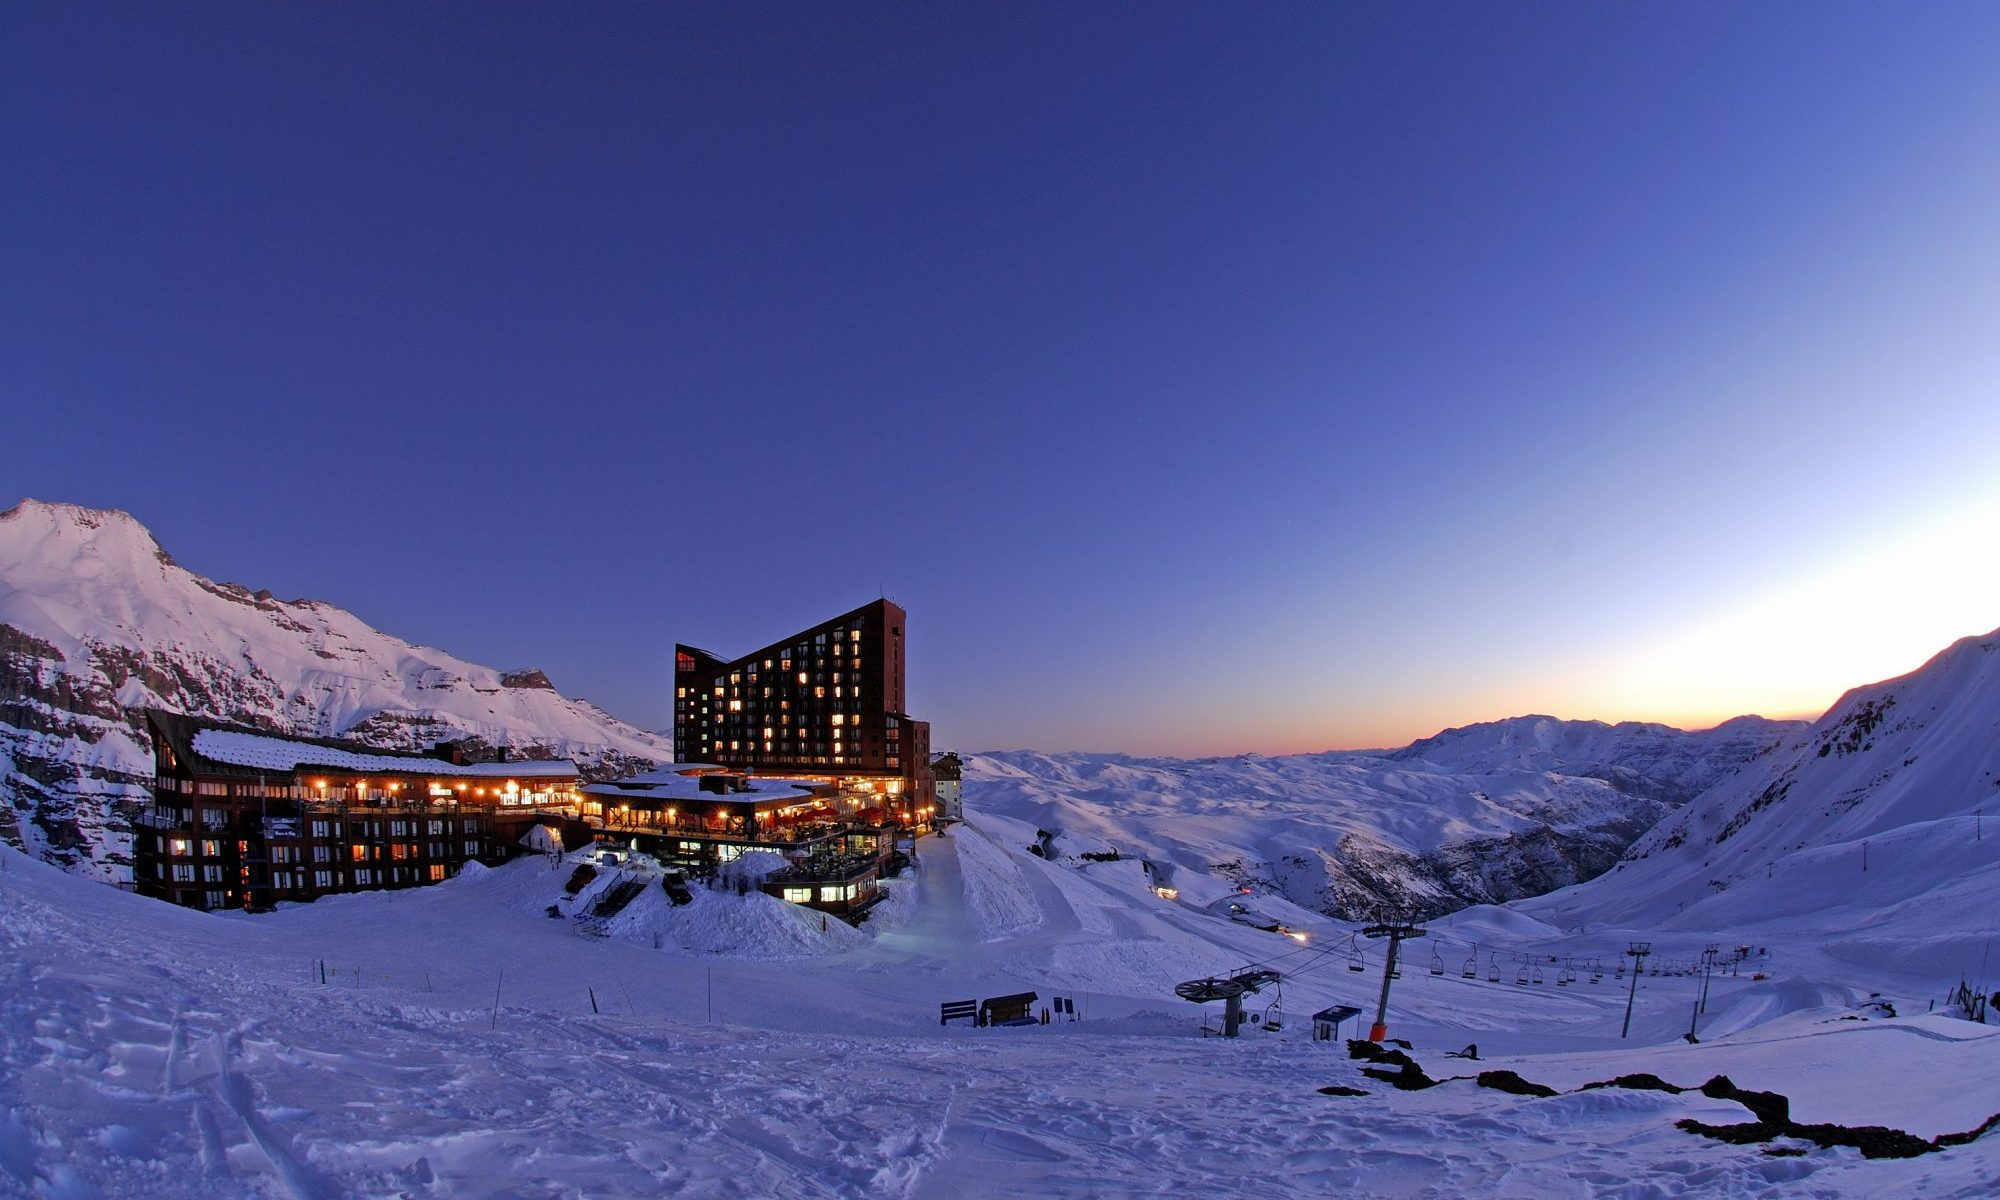 Valle Nevado is now IKON. You can ski now in South America's premier ski resort with your IKON Pass.